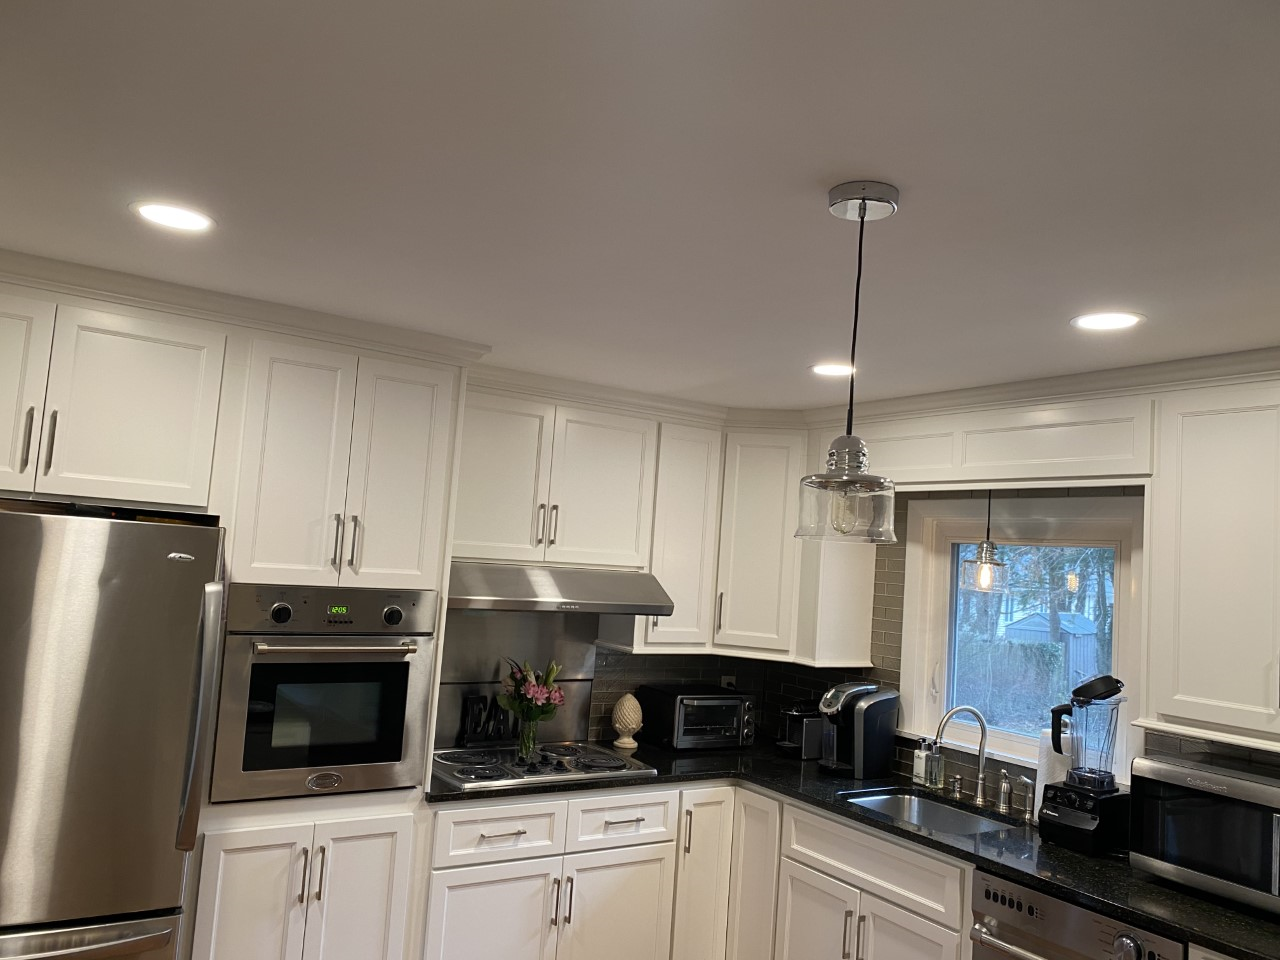 Cabinet Cures Of Massachusetts Reviews Woburn Ma Angie S List